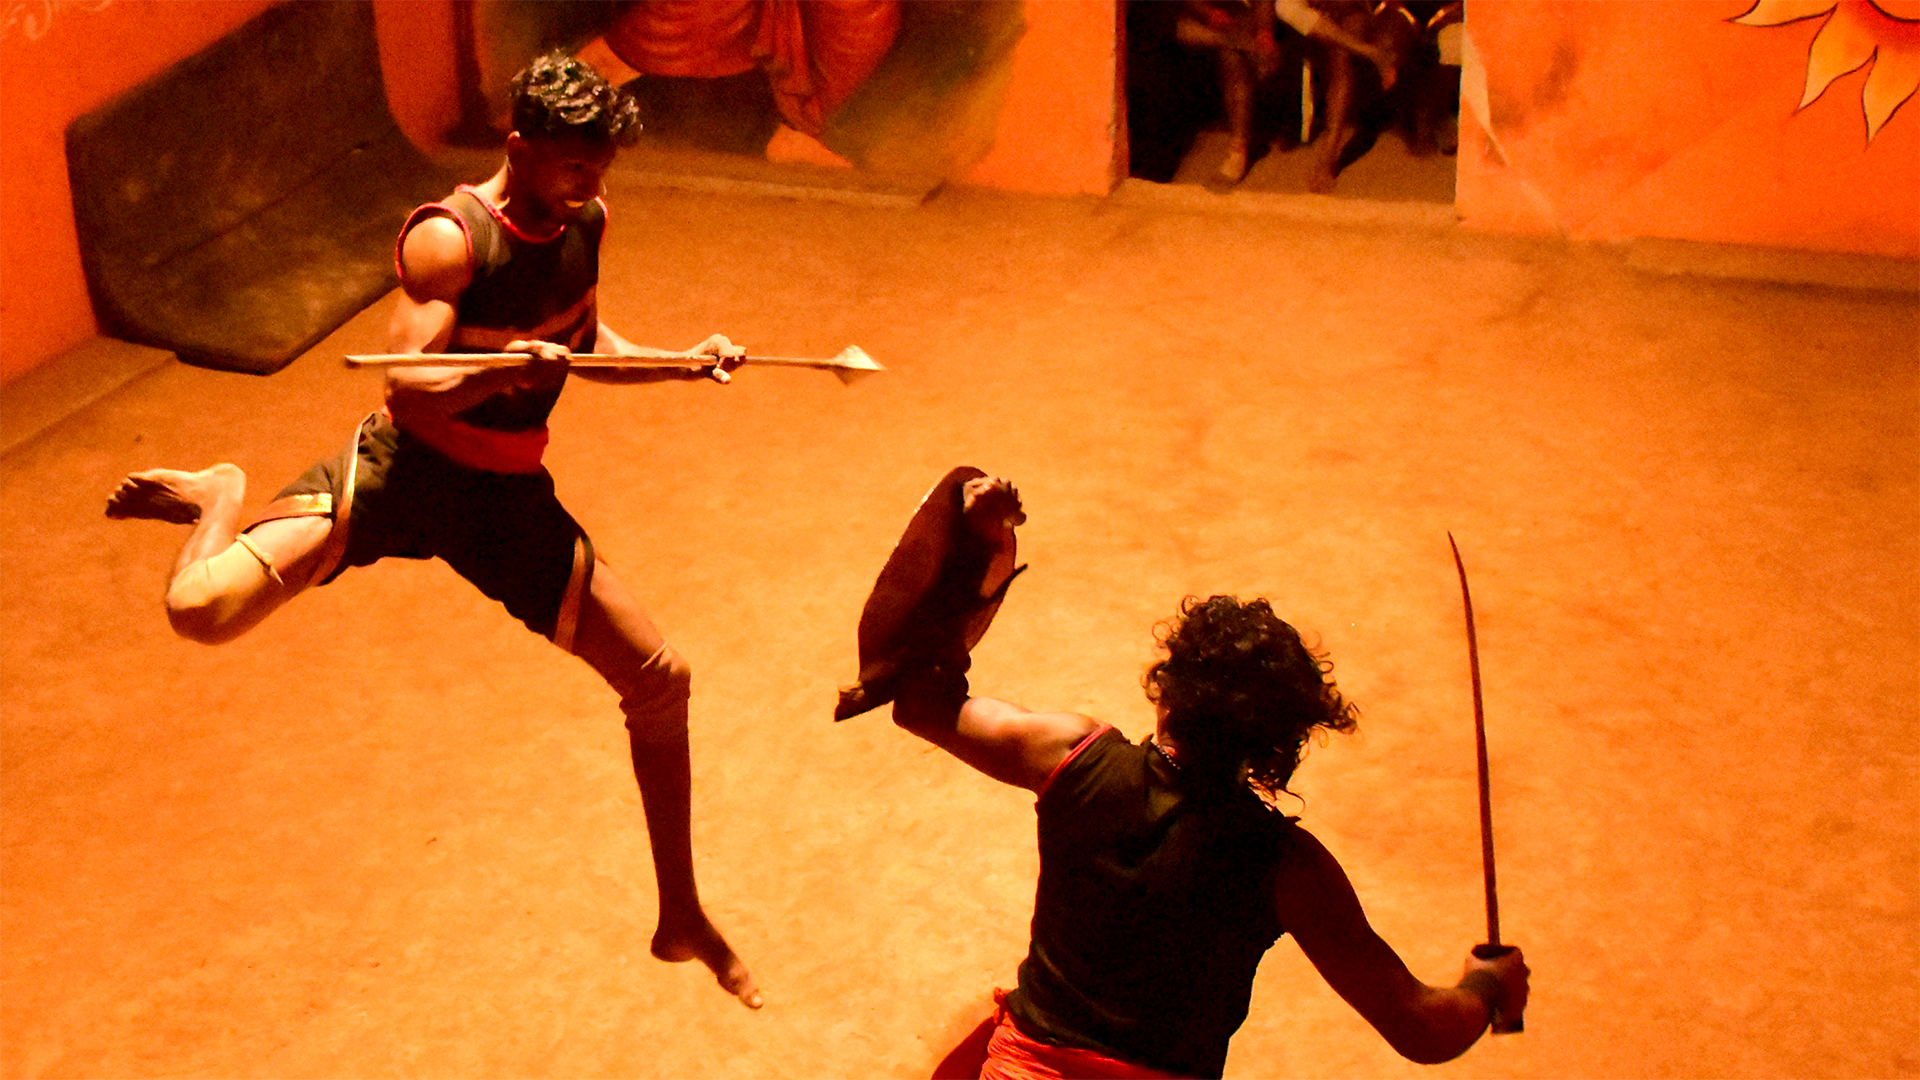 Two guys performing the Kalaripayattu art